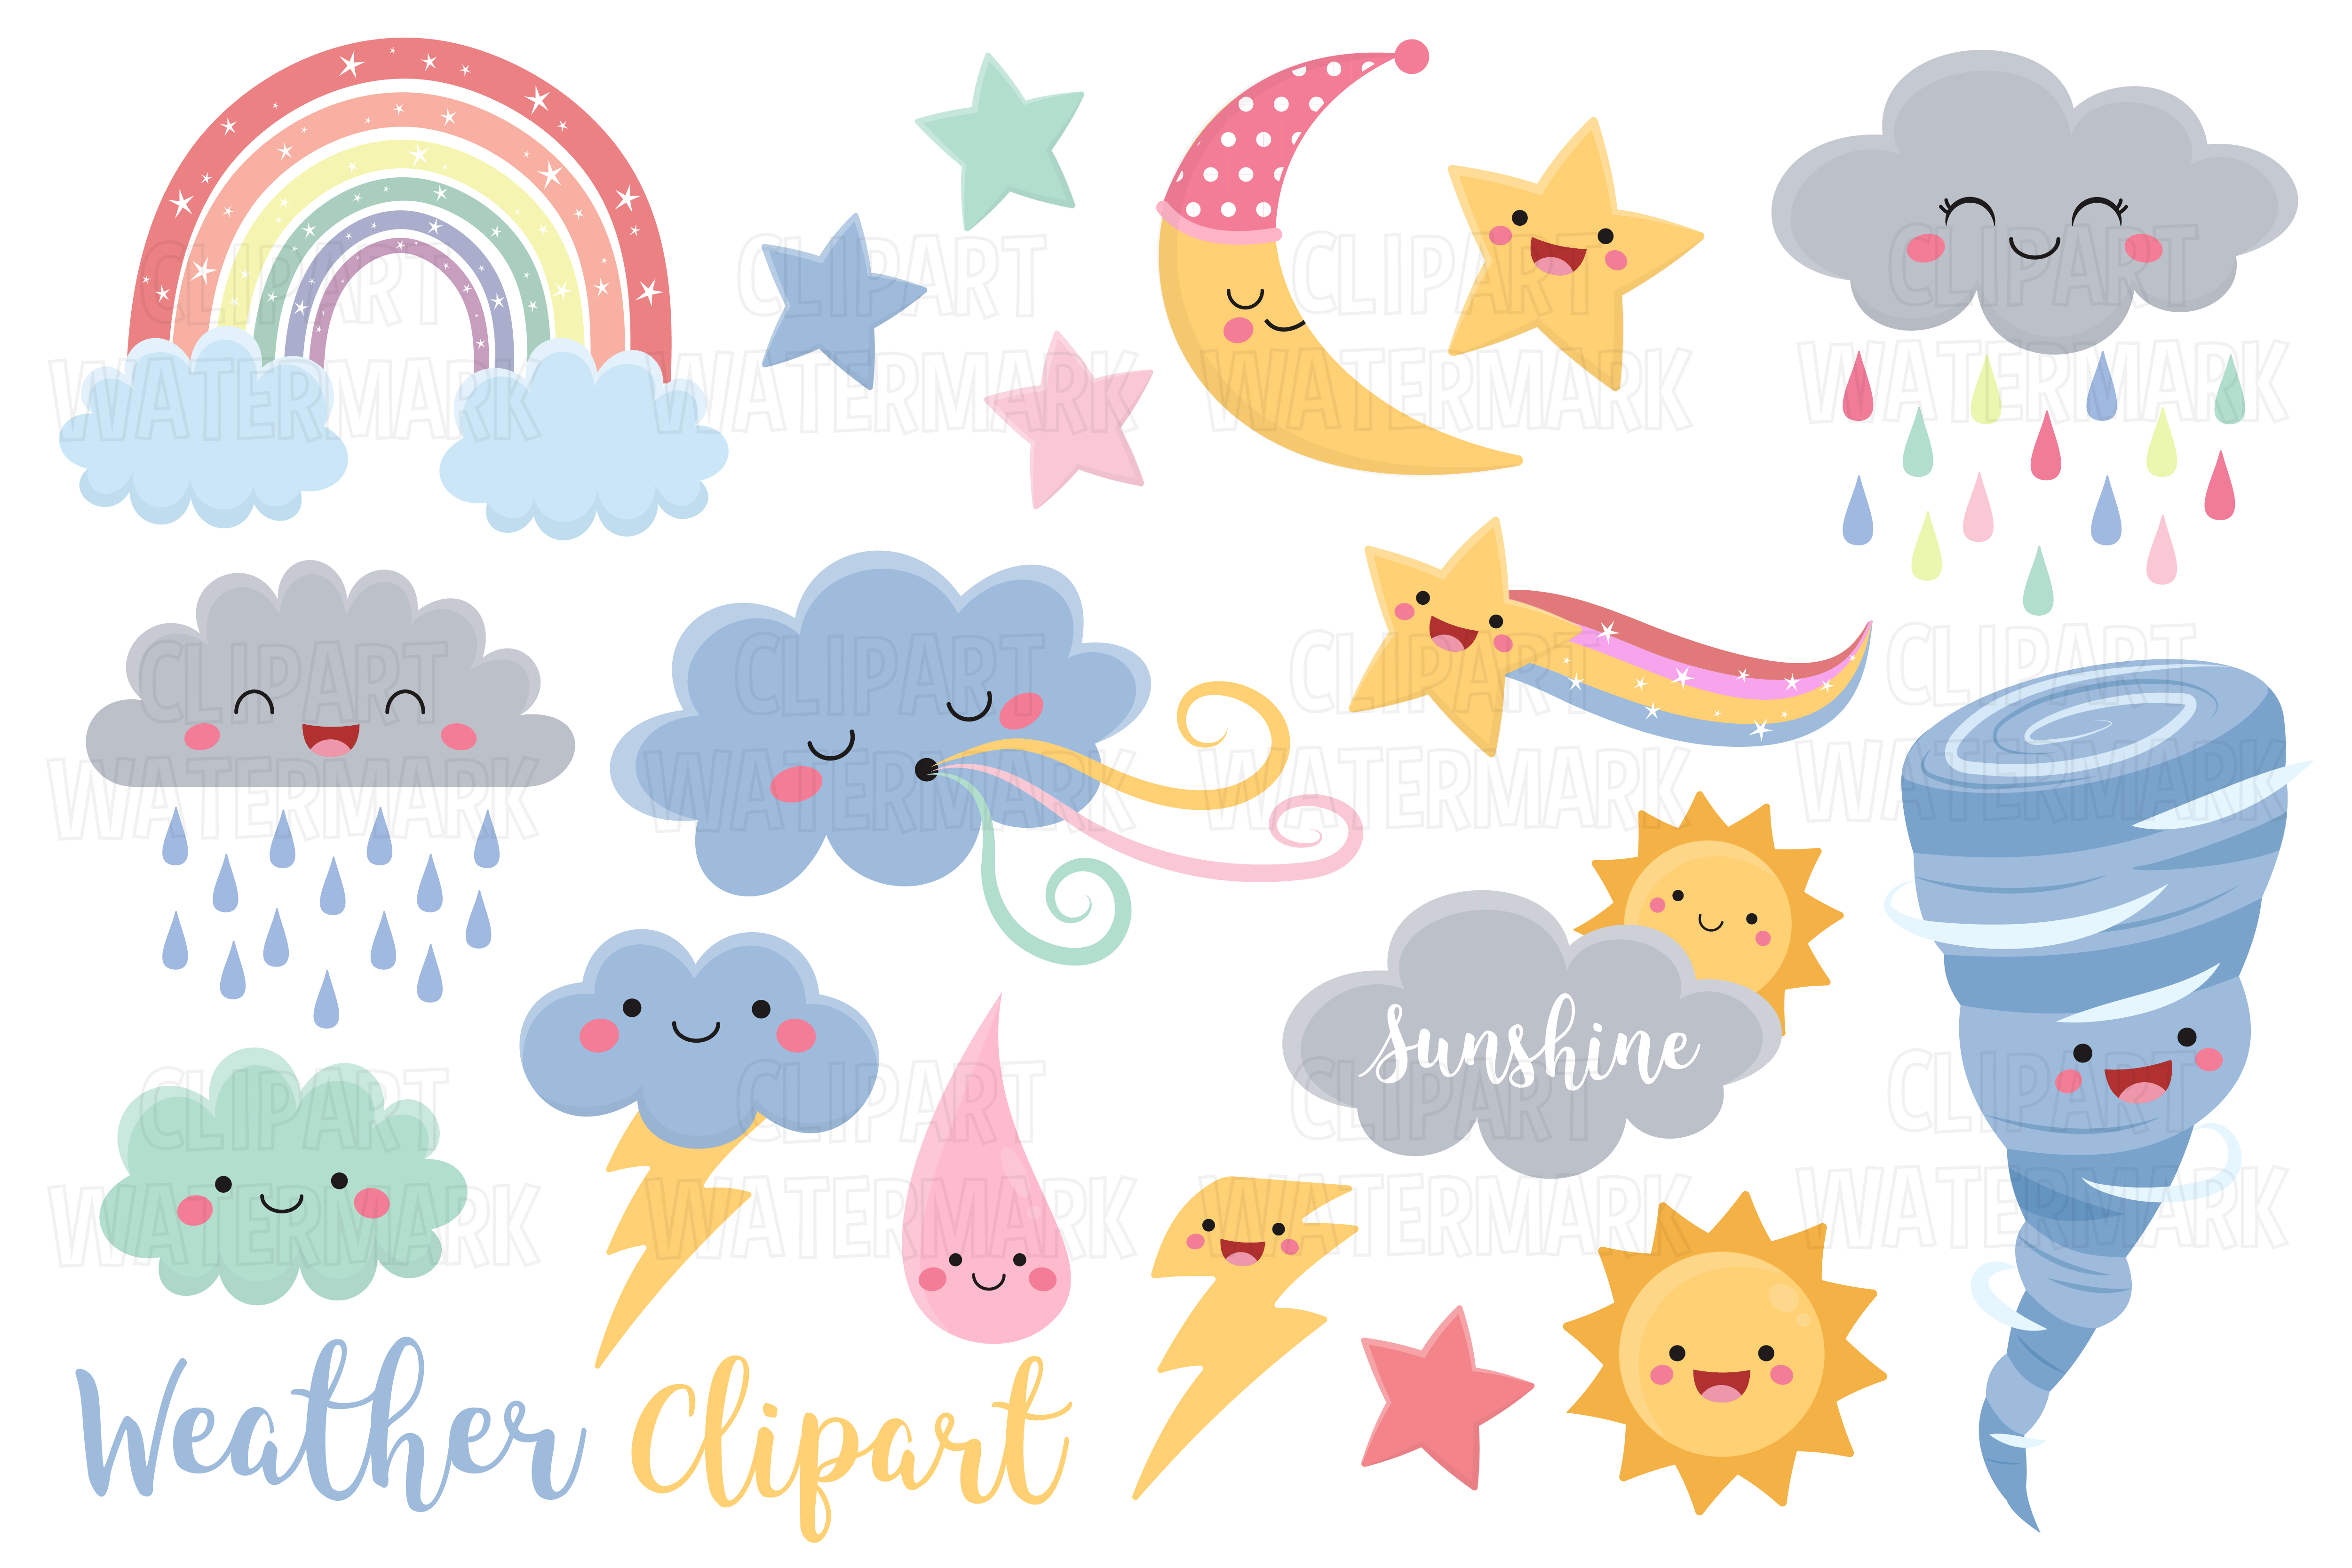 Download Free Kawaii Weather Clipart Graphic By Magreenhouse Creative Fabrica for Cricut Explore, Silhouette and other cutting machines.